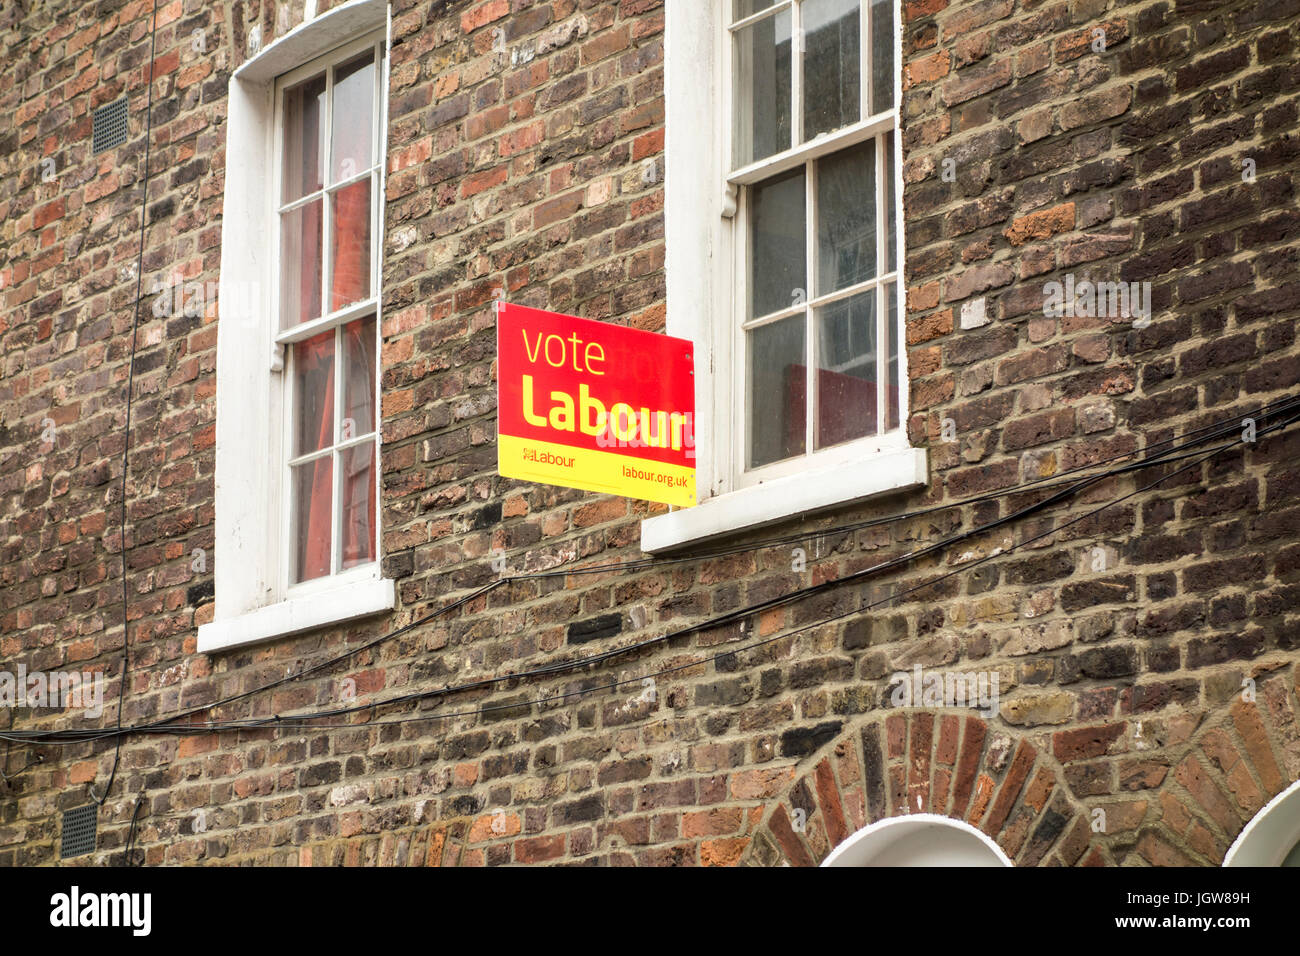 Vote Labour sign outside a traditional London terrace house / terraced house, London, UK - Stock Image